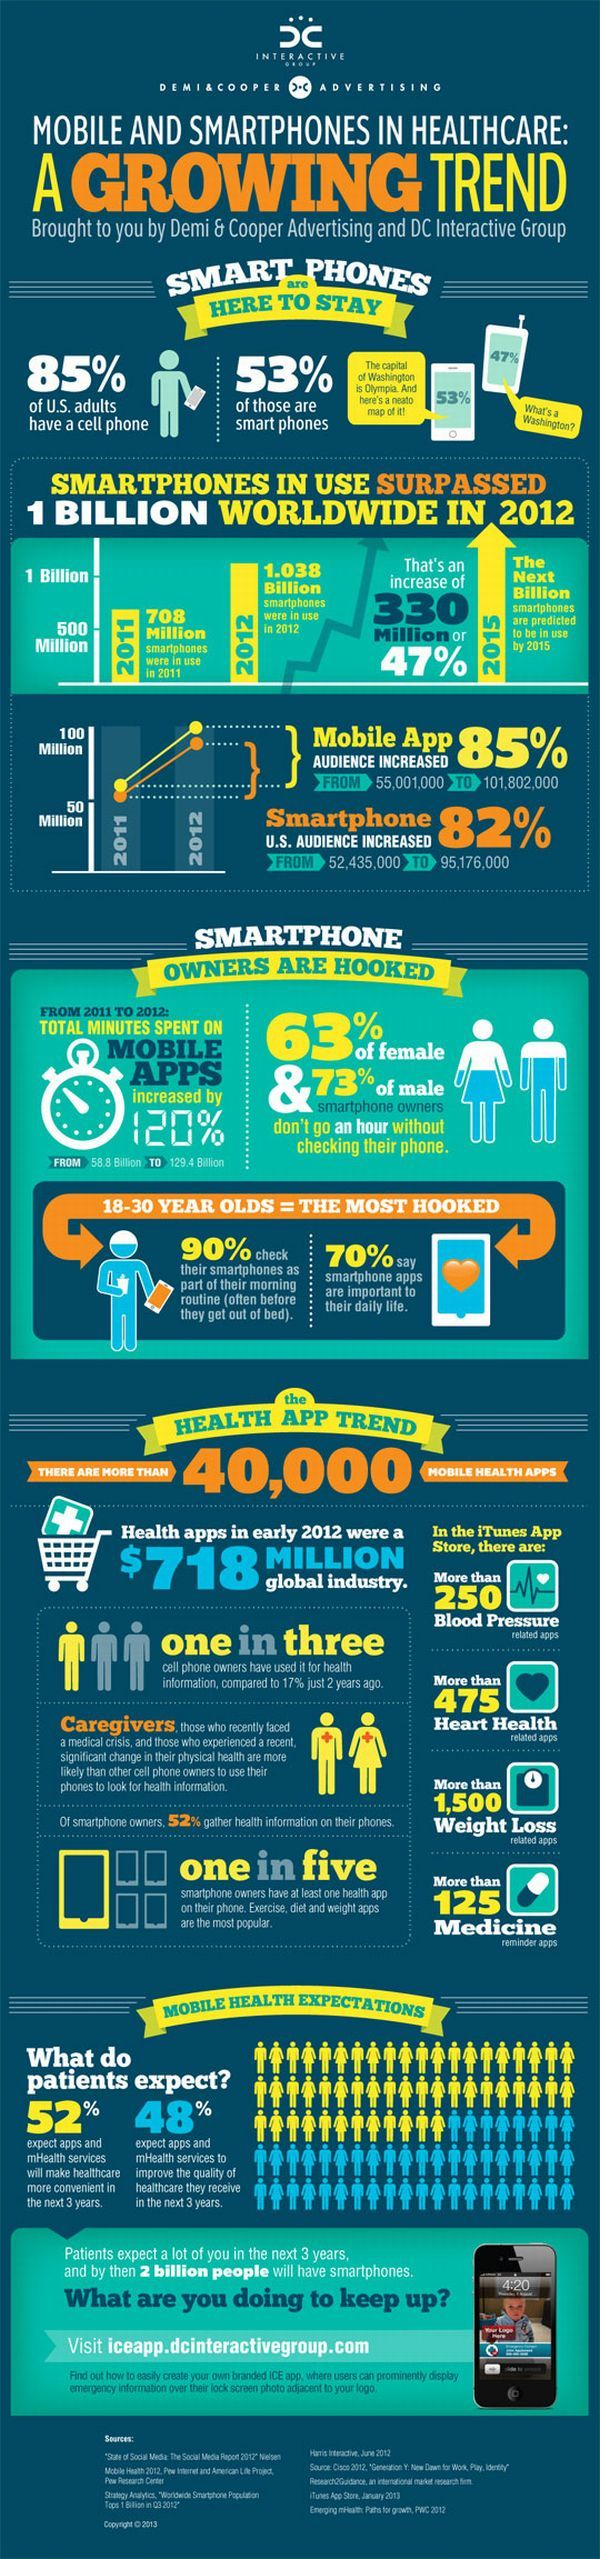 Infographic: Use of health apps to skyrocket via @MarkRaganCEO #hcsm